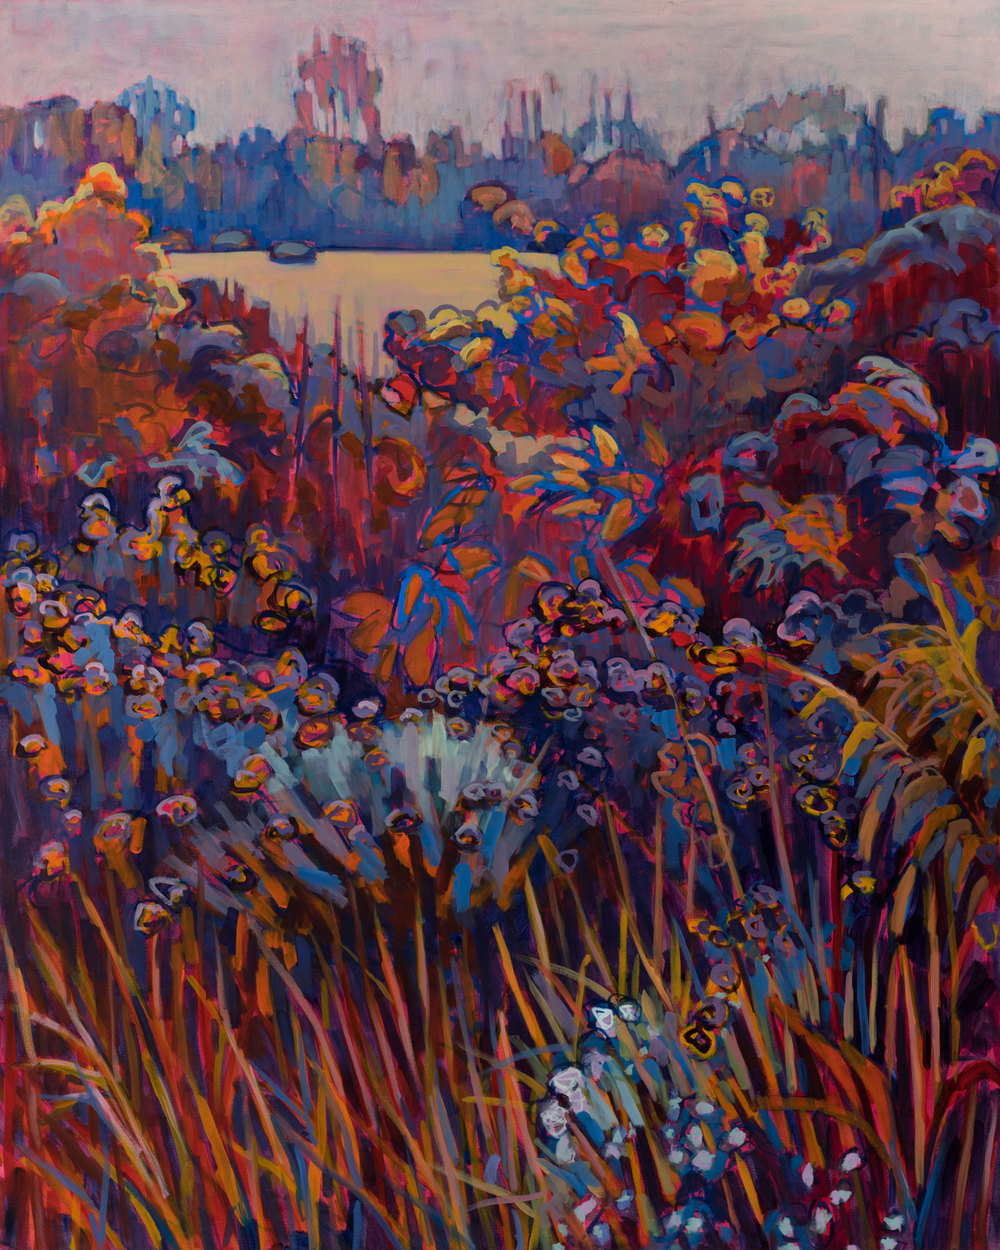 "Prairie 22 Revisited 60"" X 48"" - SOLD"